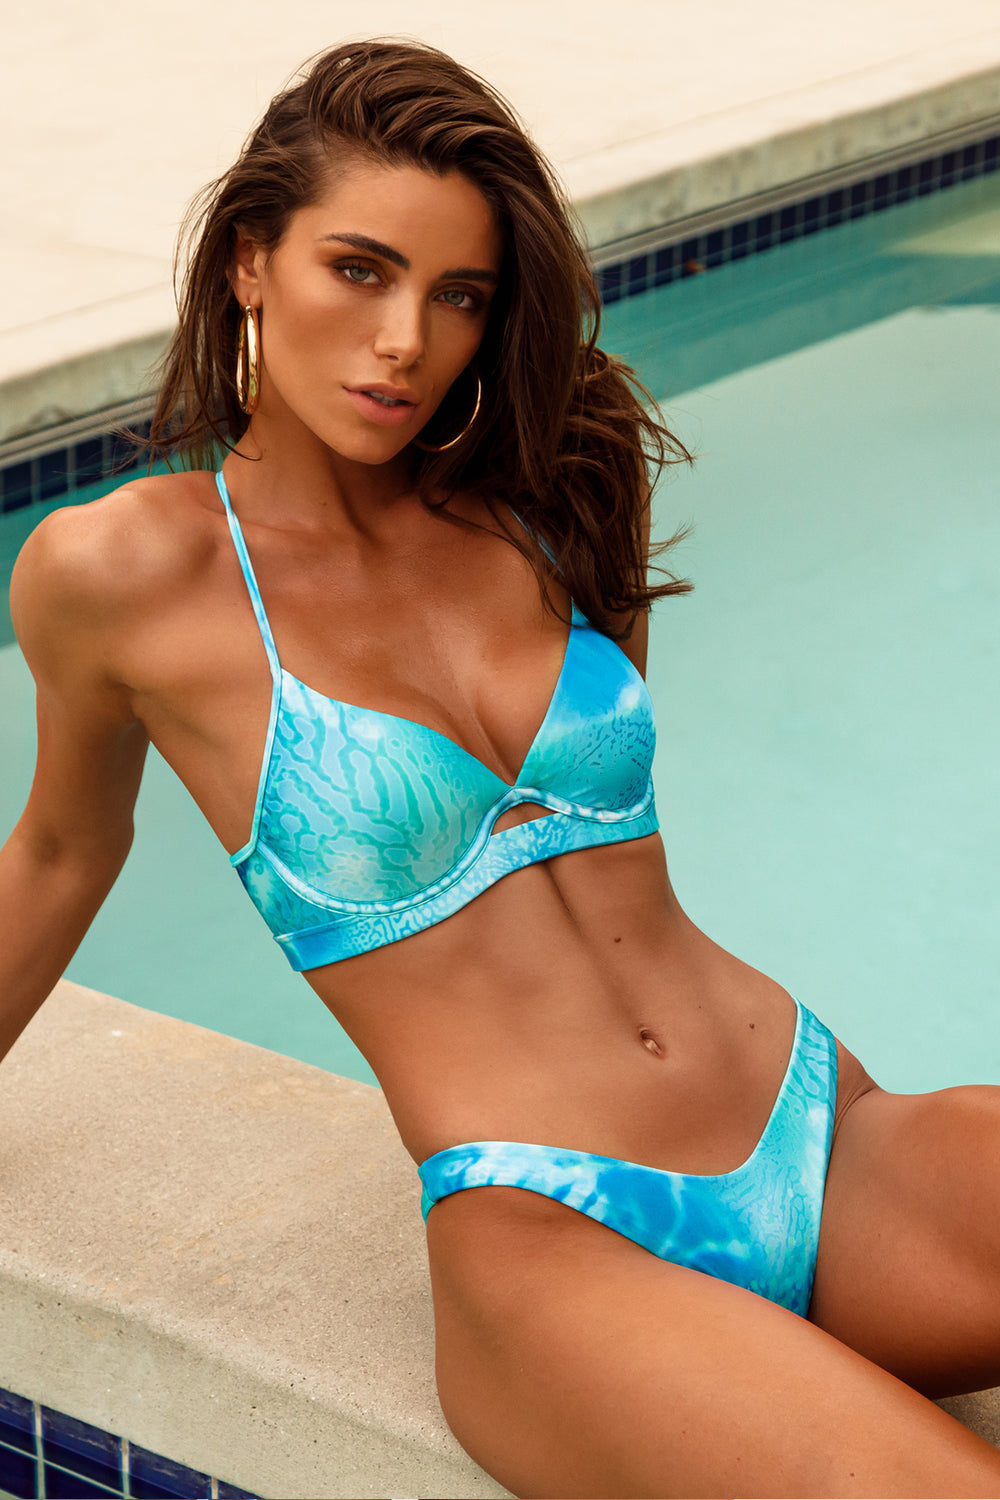 OCEAN SHIMMER - Underwire Top & High Leg Brazilian Bottom • Aqua